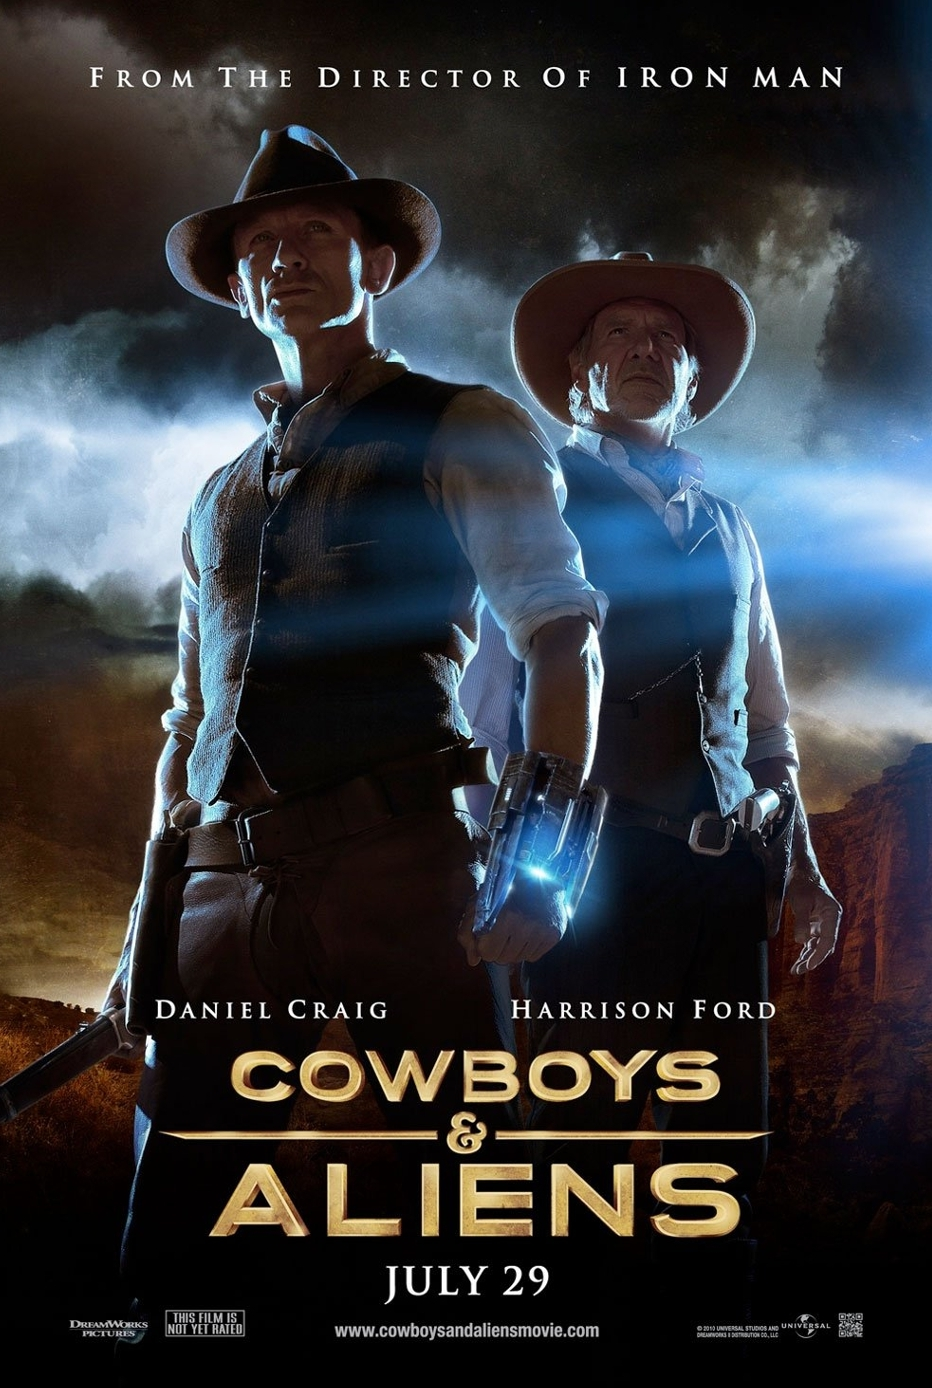 Cowboys-Aliens-movie-posters-25099634-932-1388.jpg